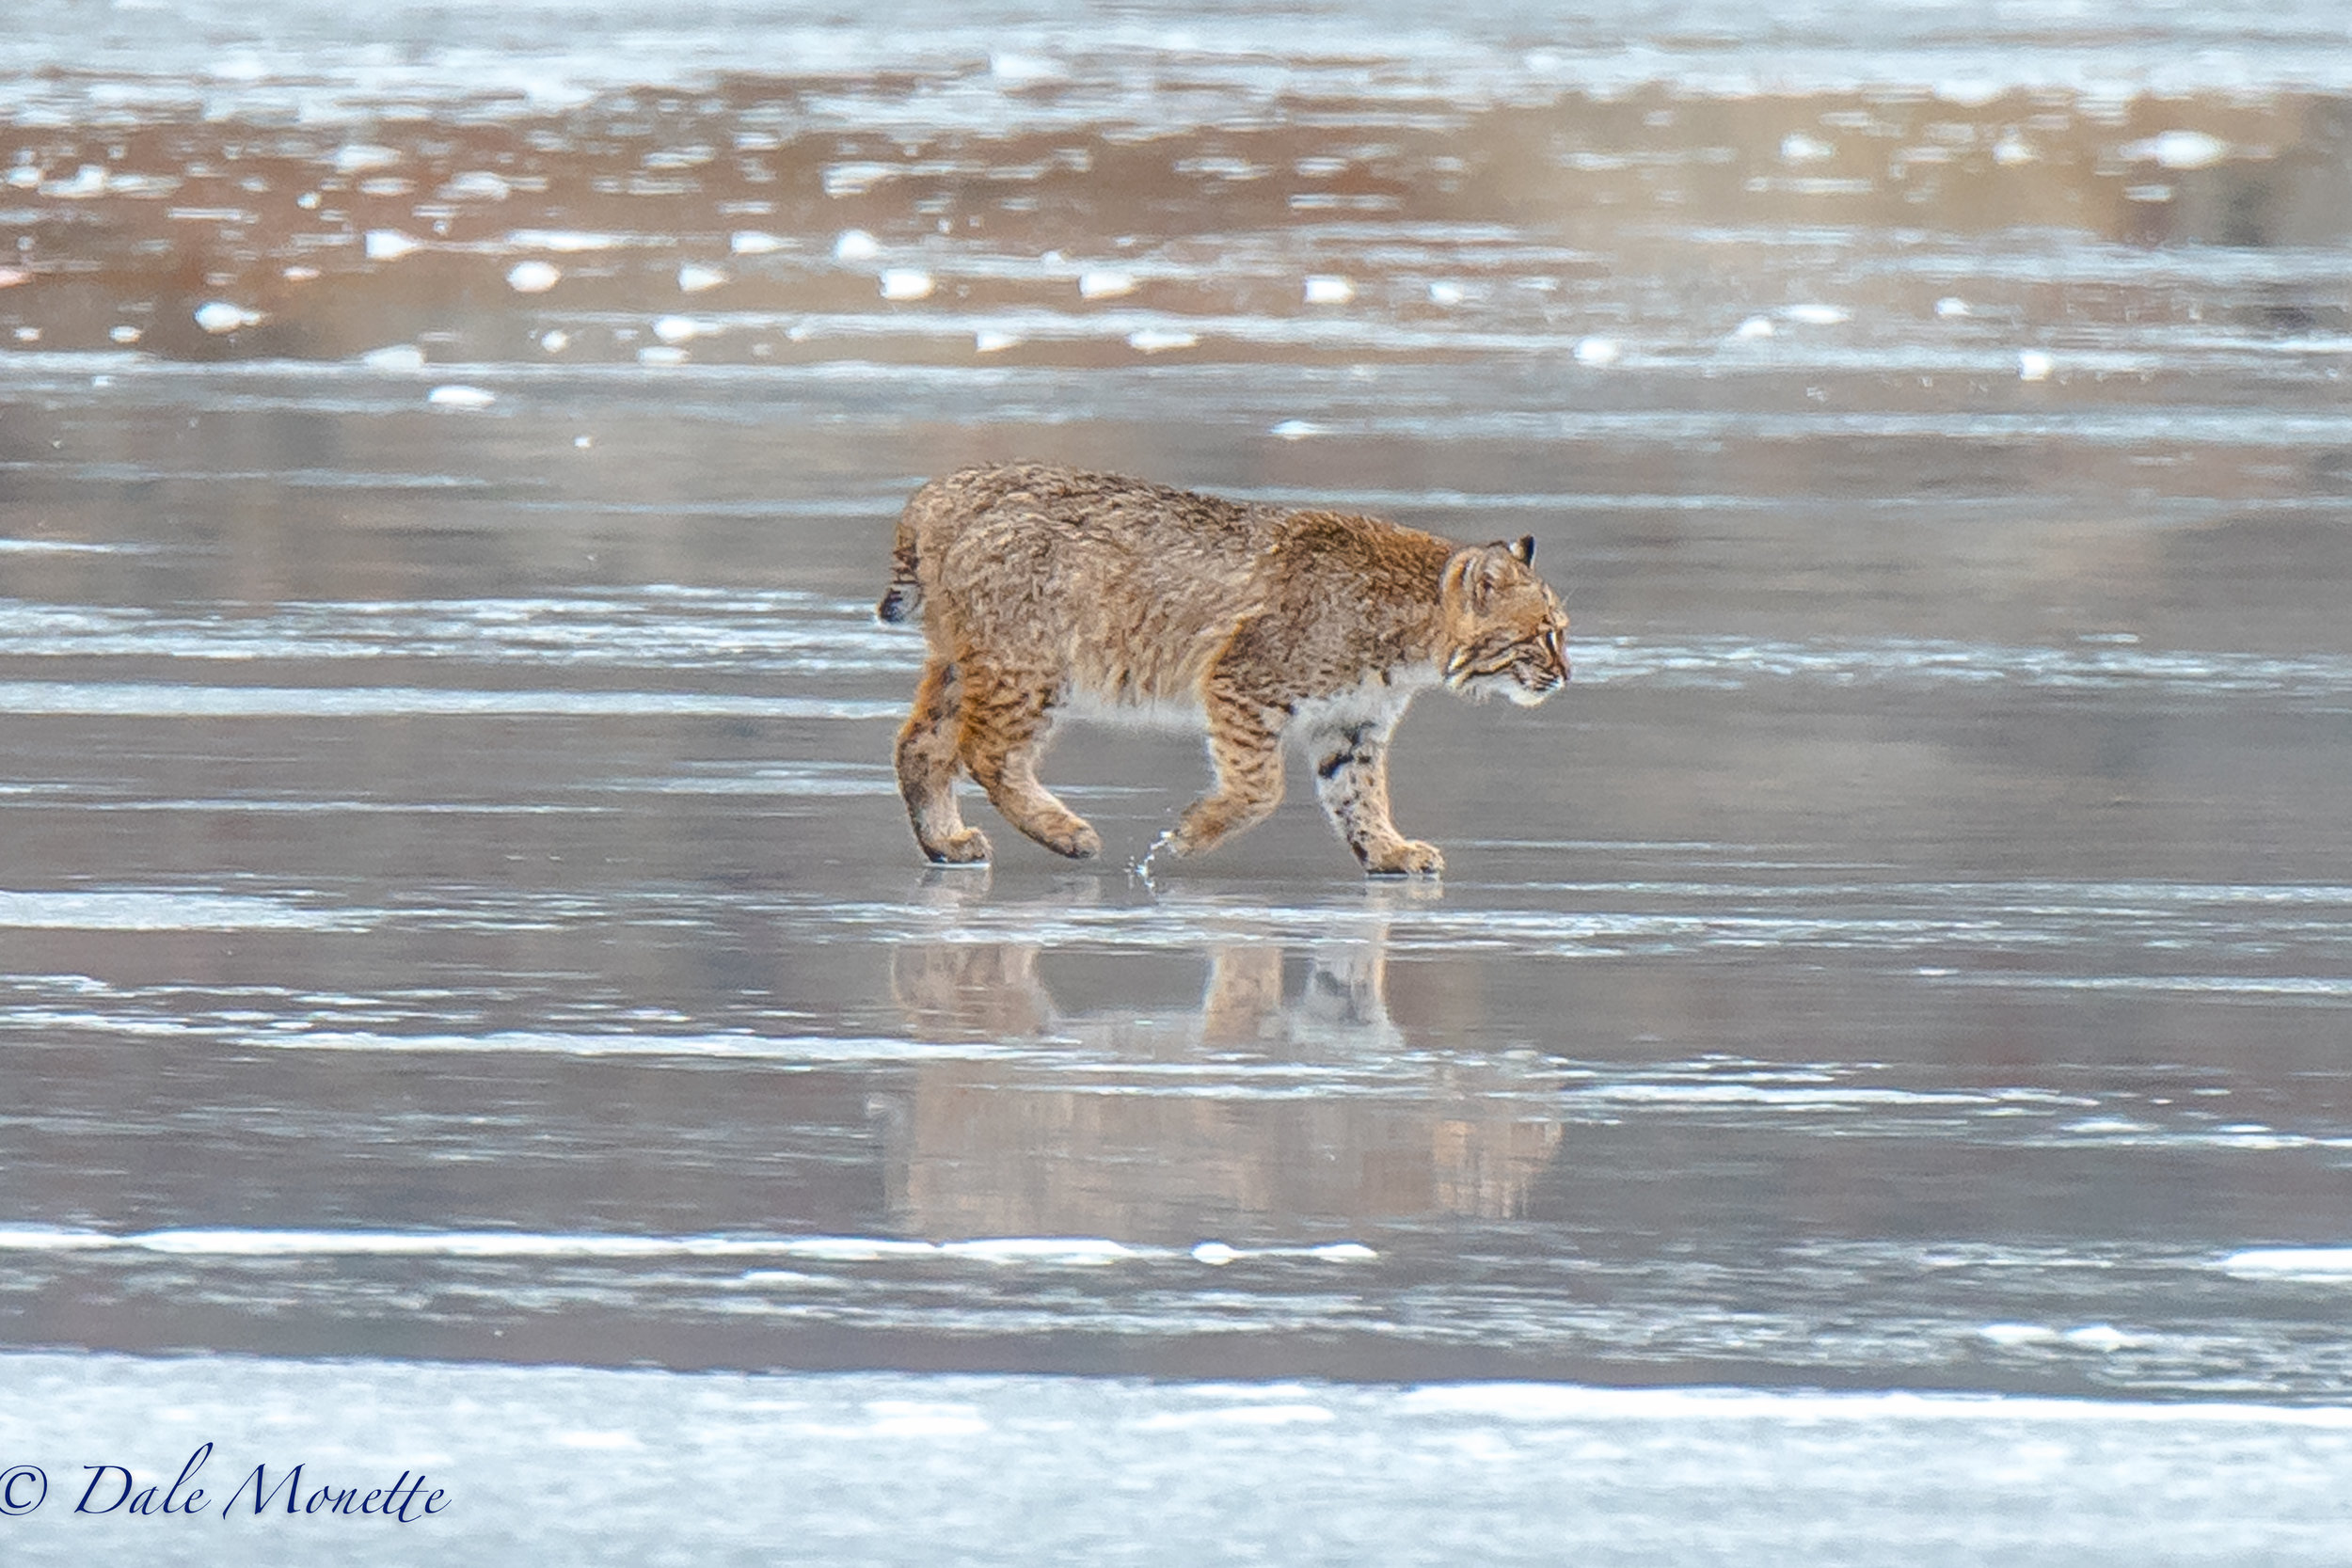 The same bobcat wandering around the ice taking a break from feeding.  A beautiful cat to say the least!  1/4/17